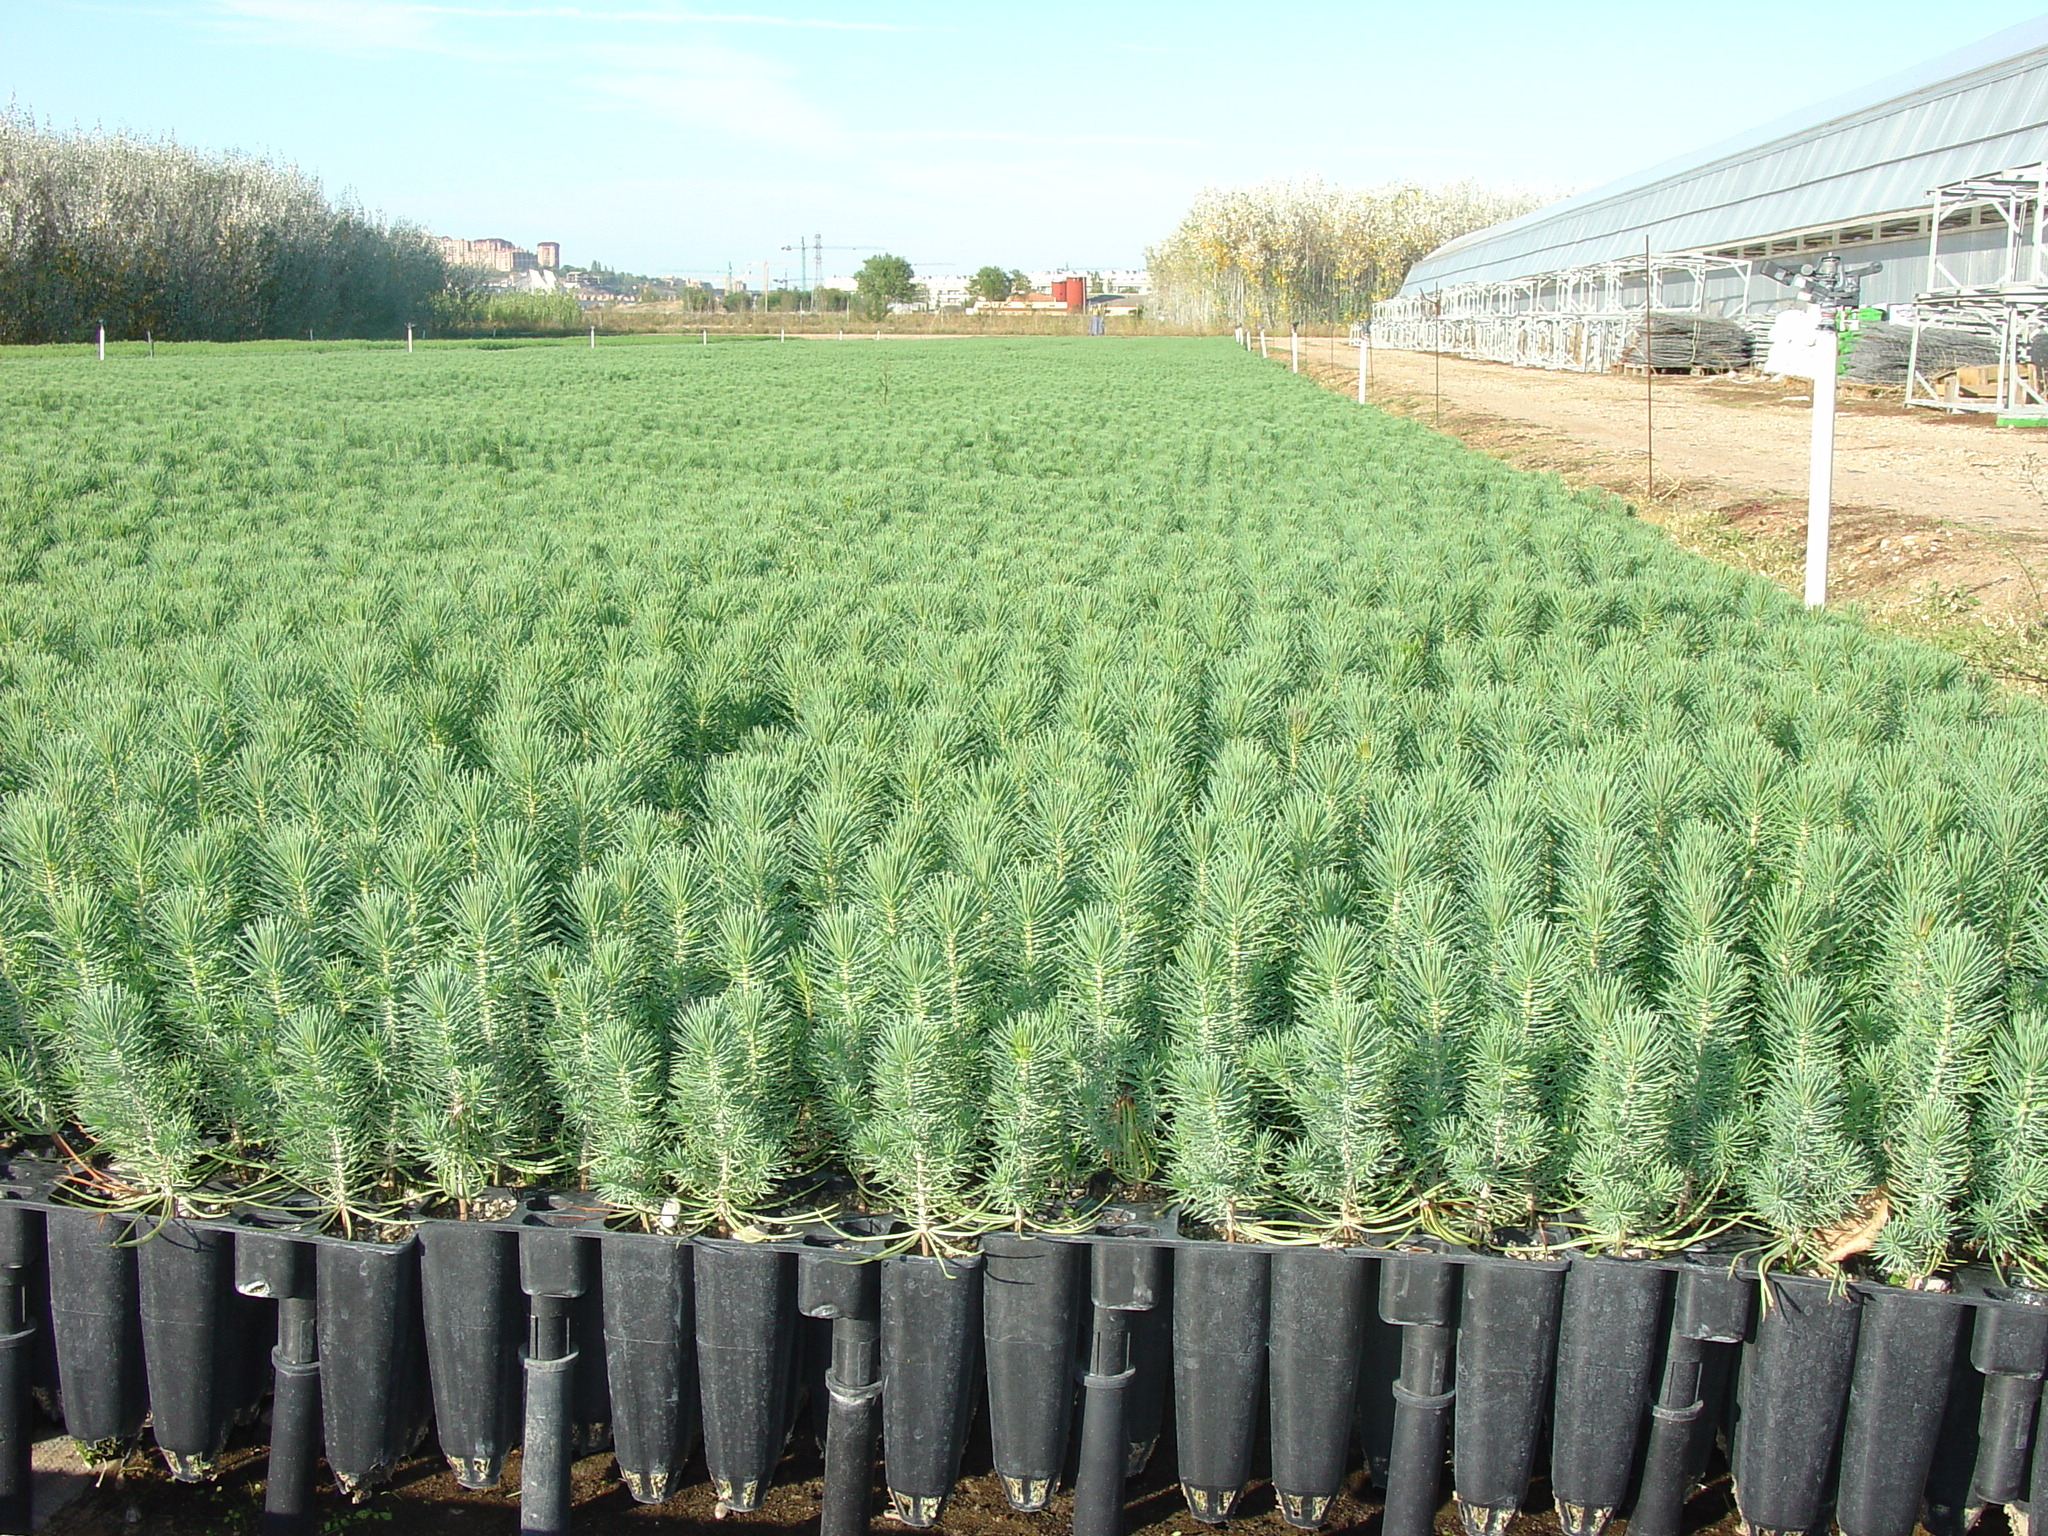 Desarrollo sustentable viveros 10 28 13 for Conclusion de un vivero